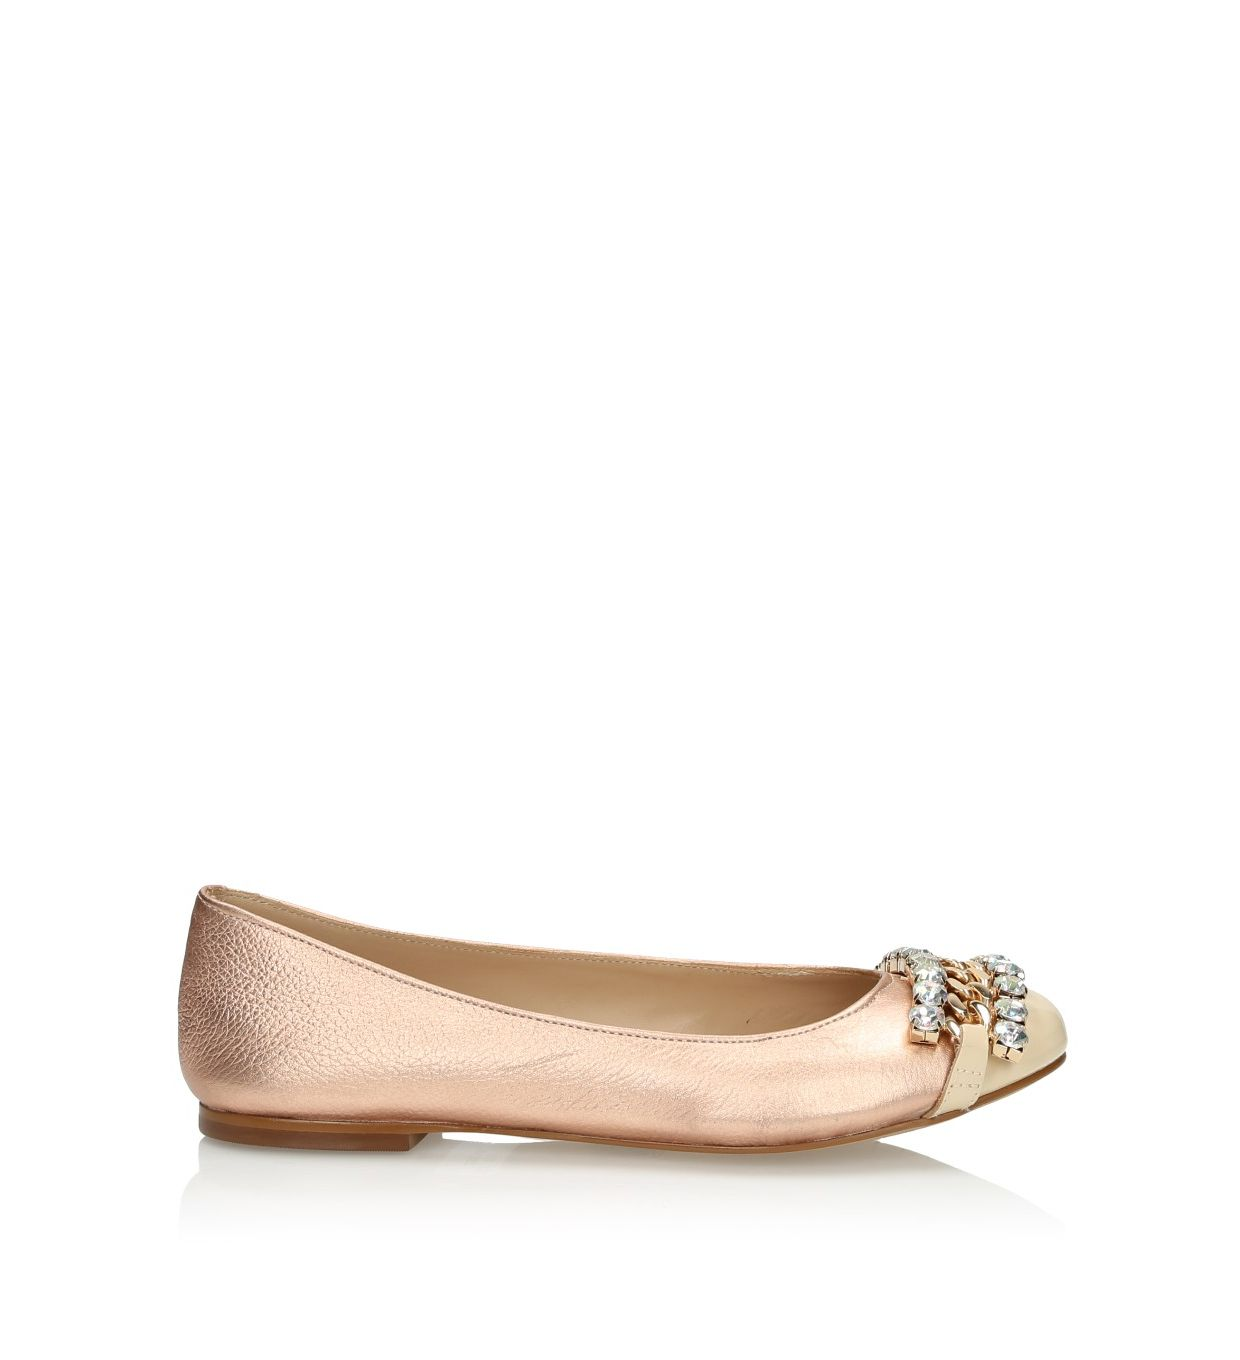 Copper gold ballerinas